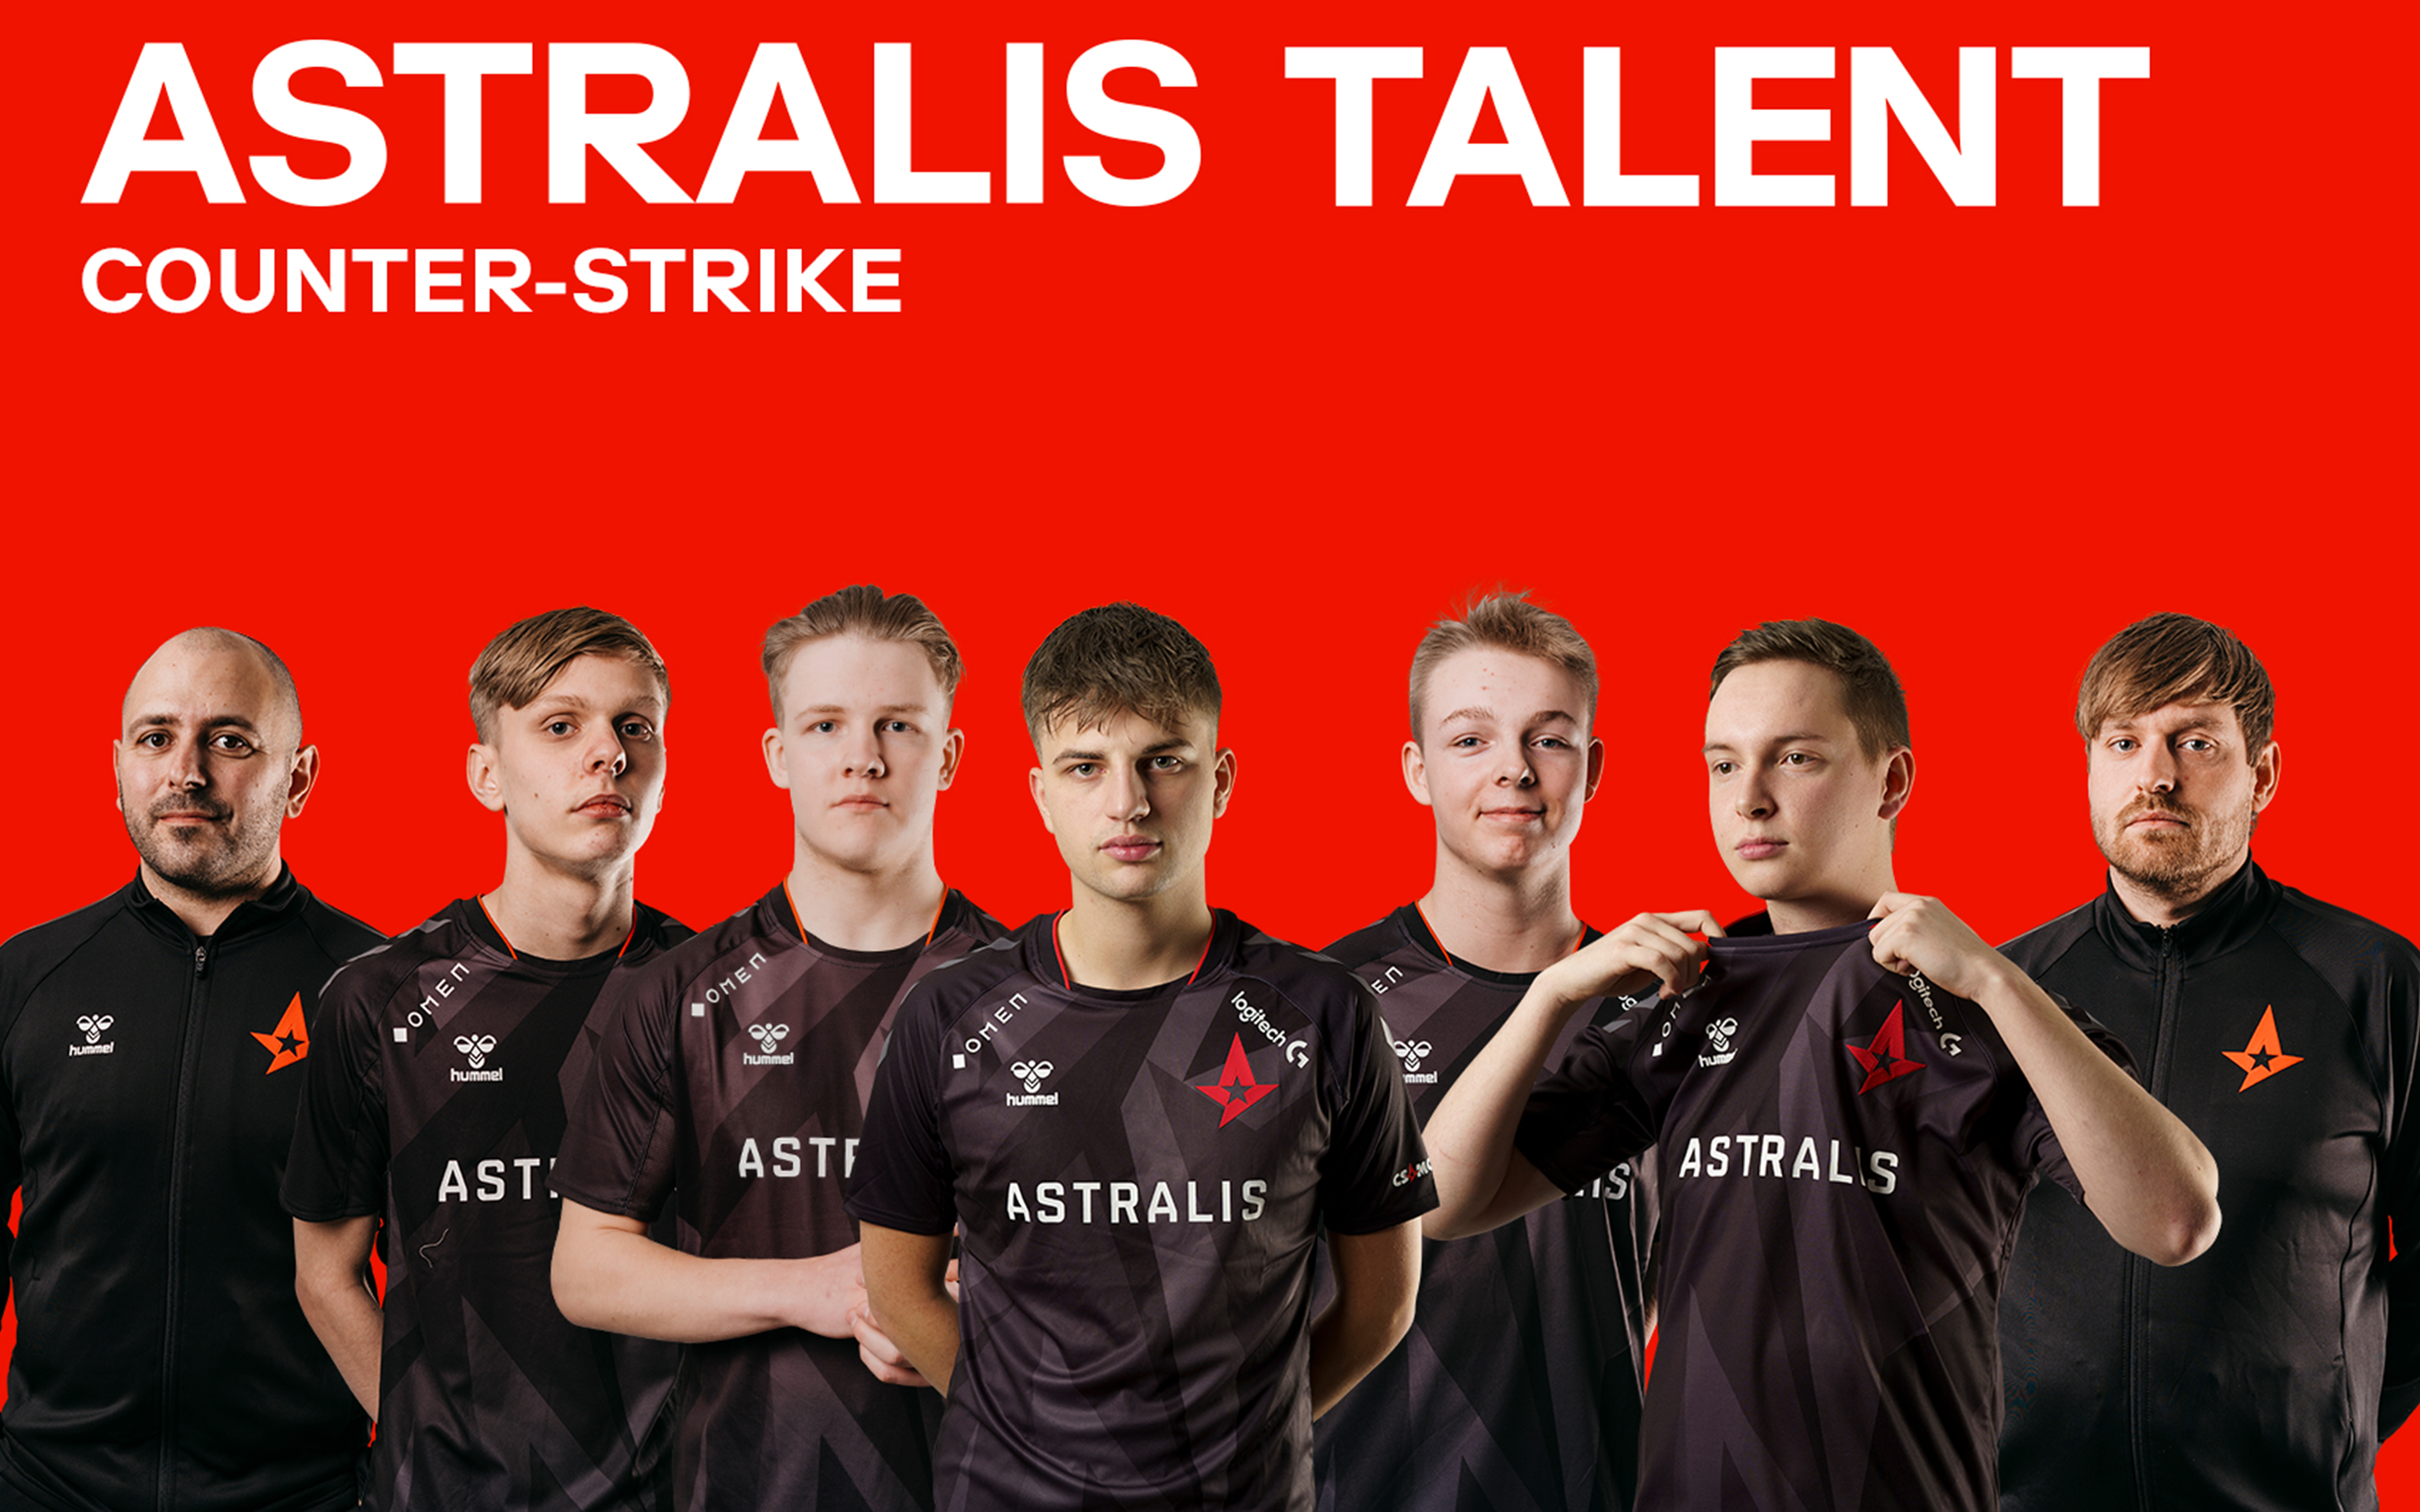 Astralis Talent Off To A Flying Start